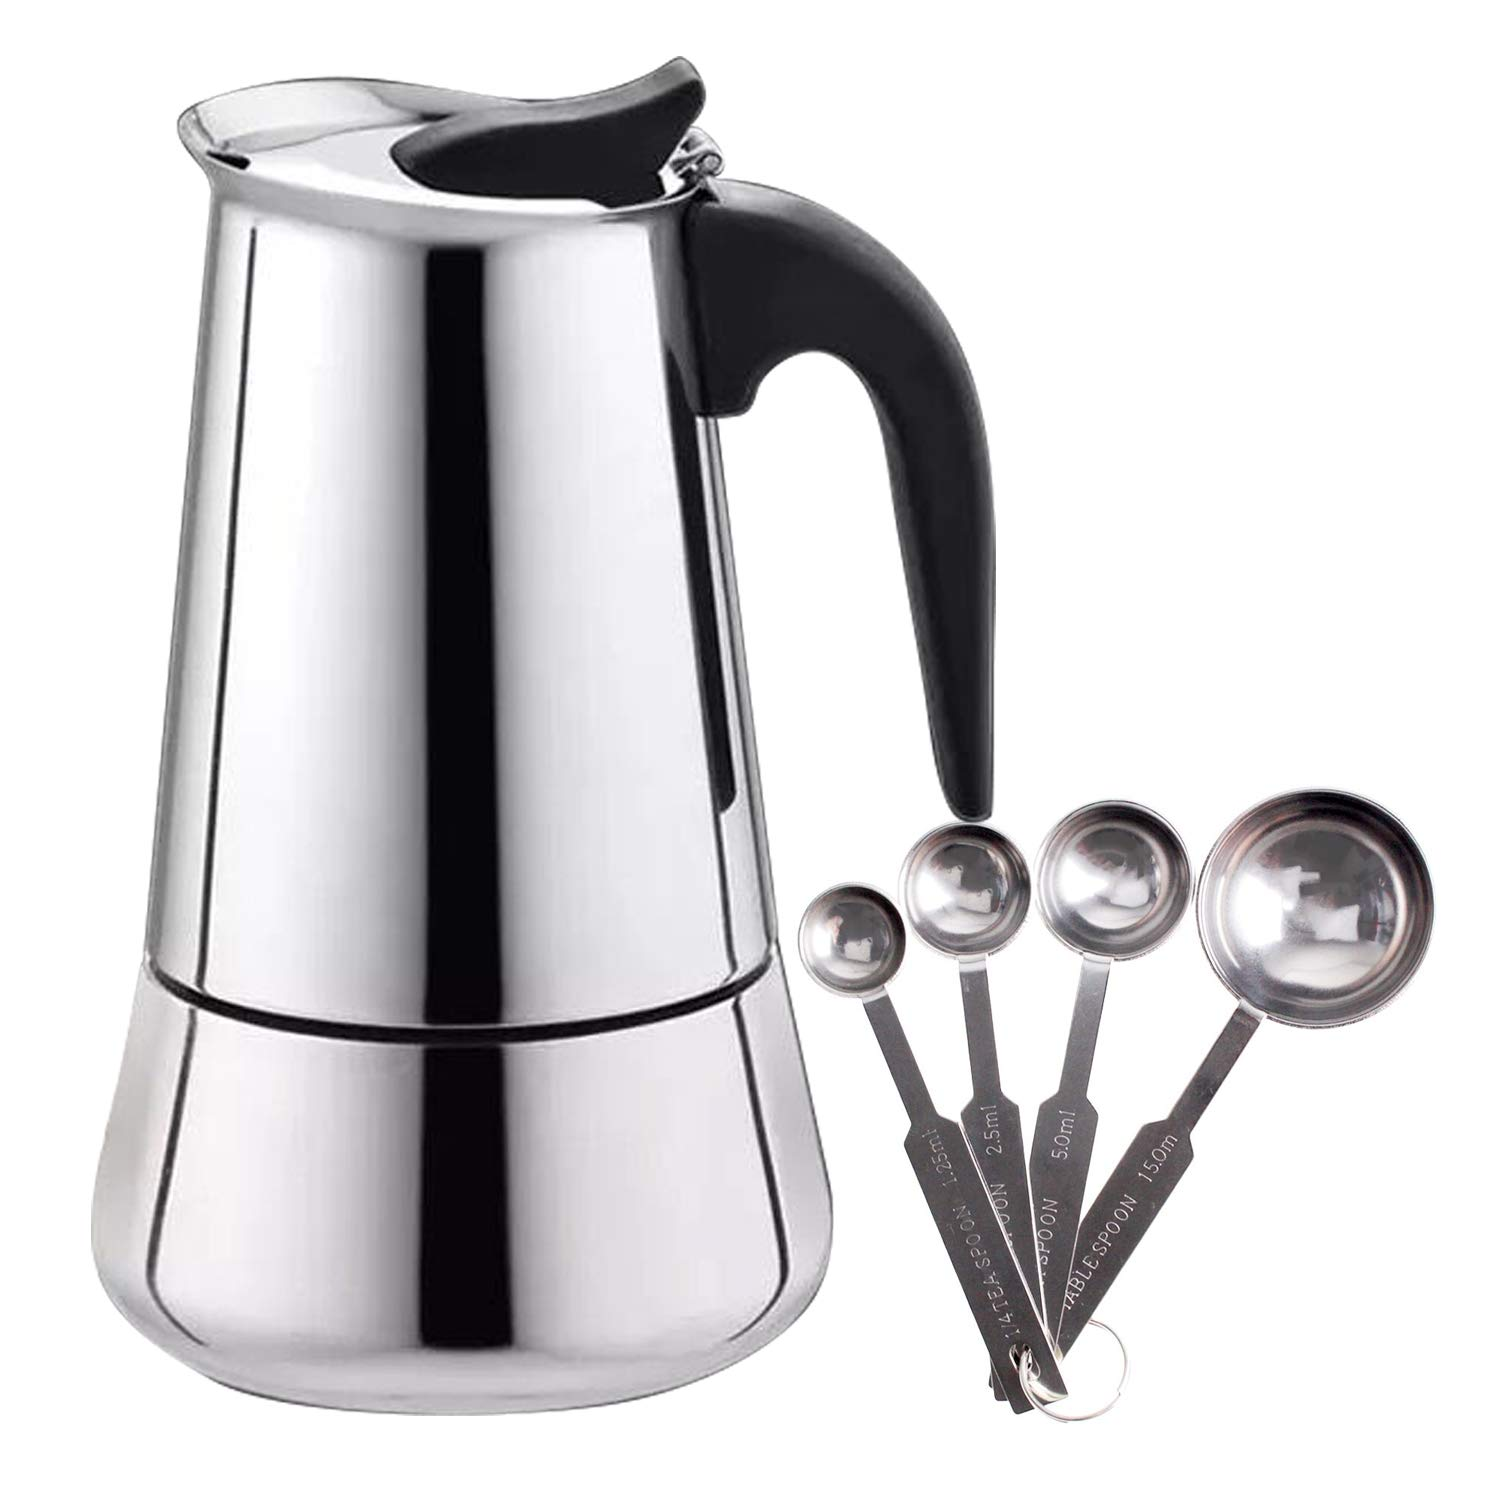 Espresso Maker Stovetop Stainless Steel Moka Pot Coffee Broad base- 9 Cup with Coffee Scoops Measuring Spoons.